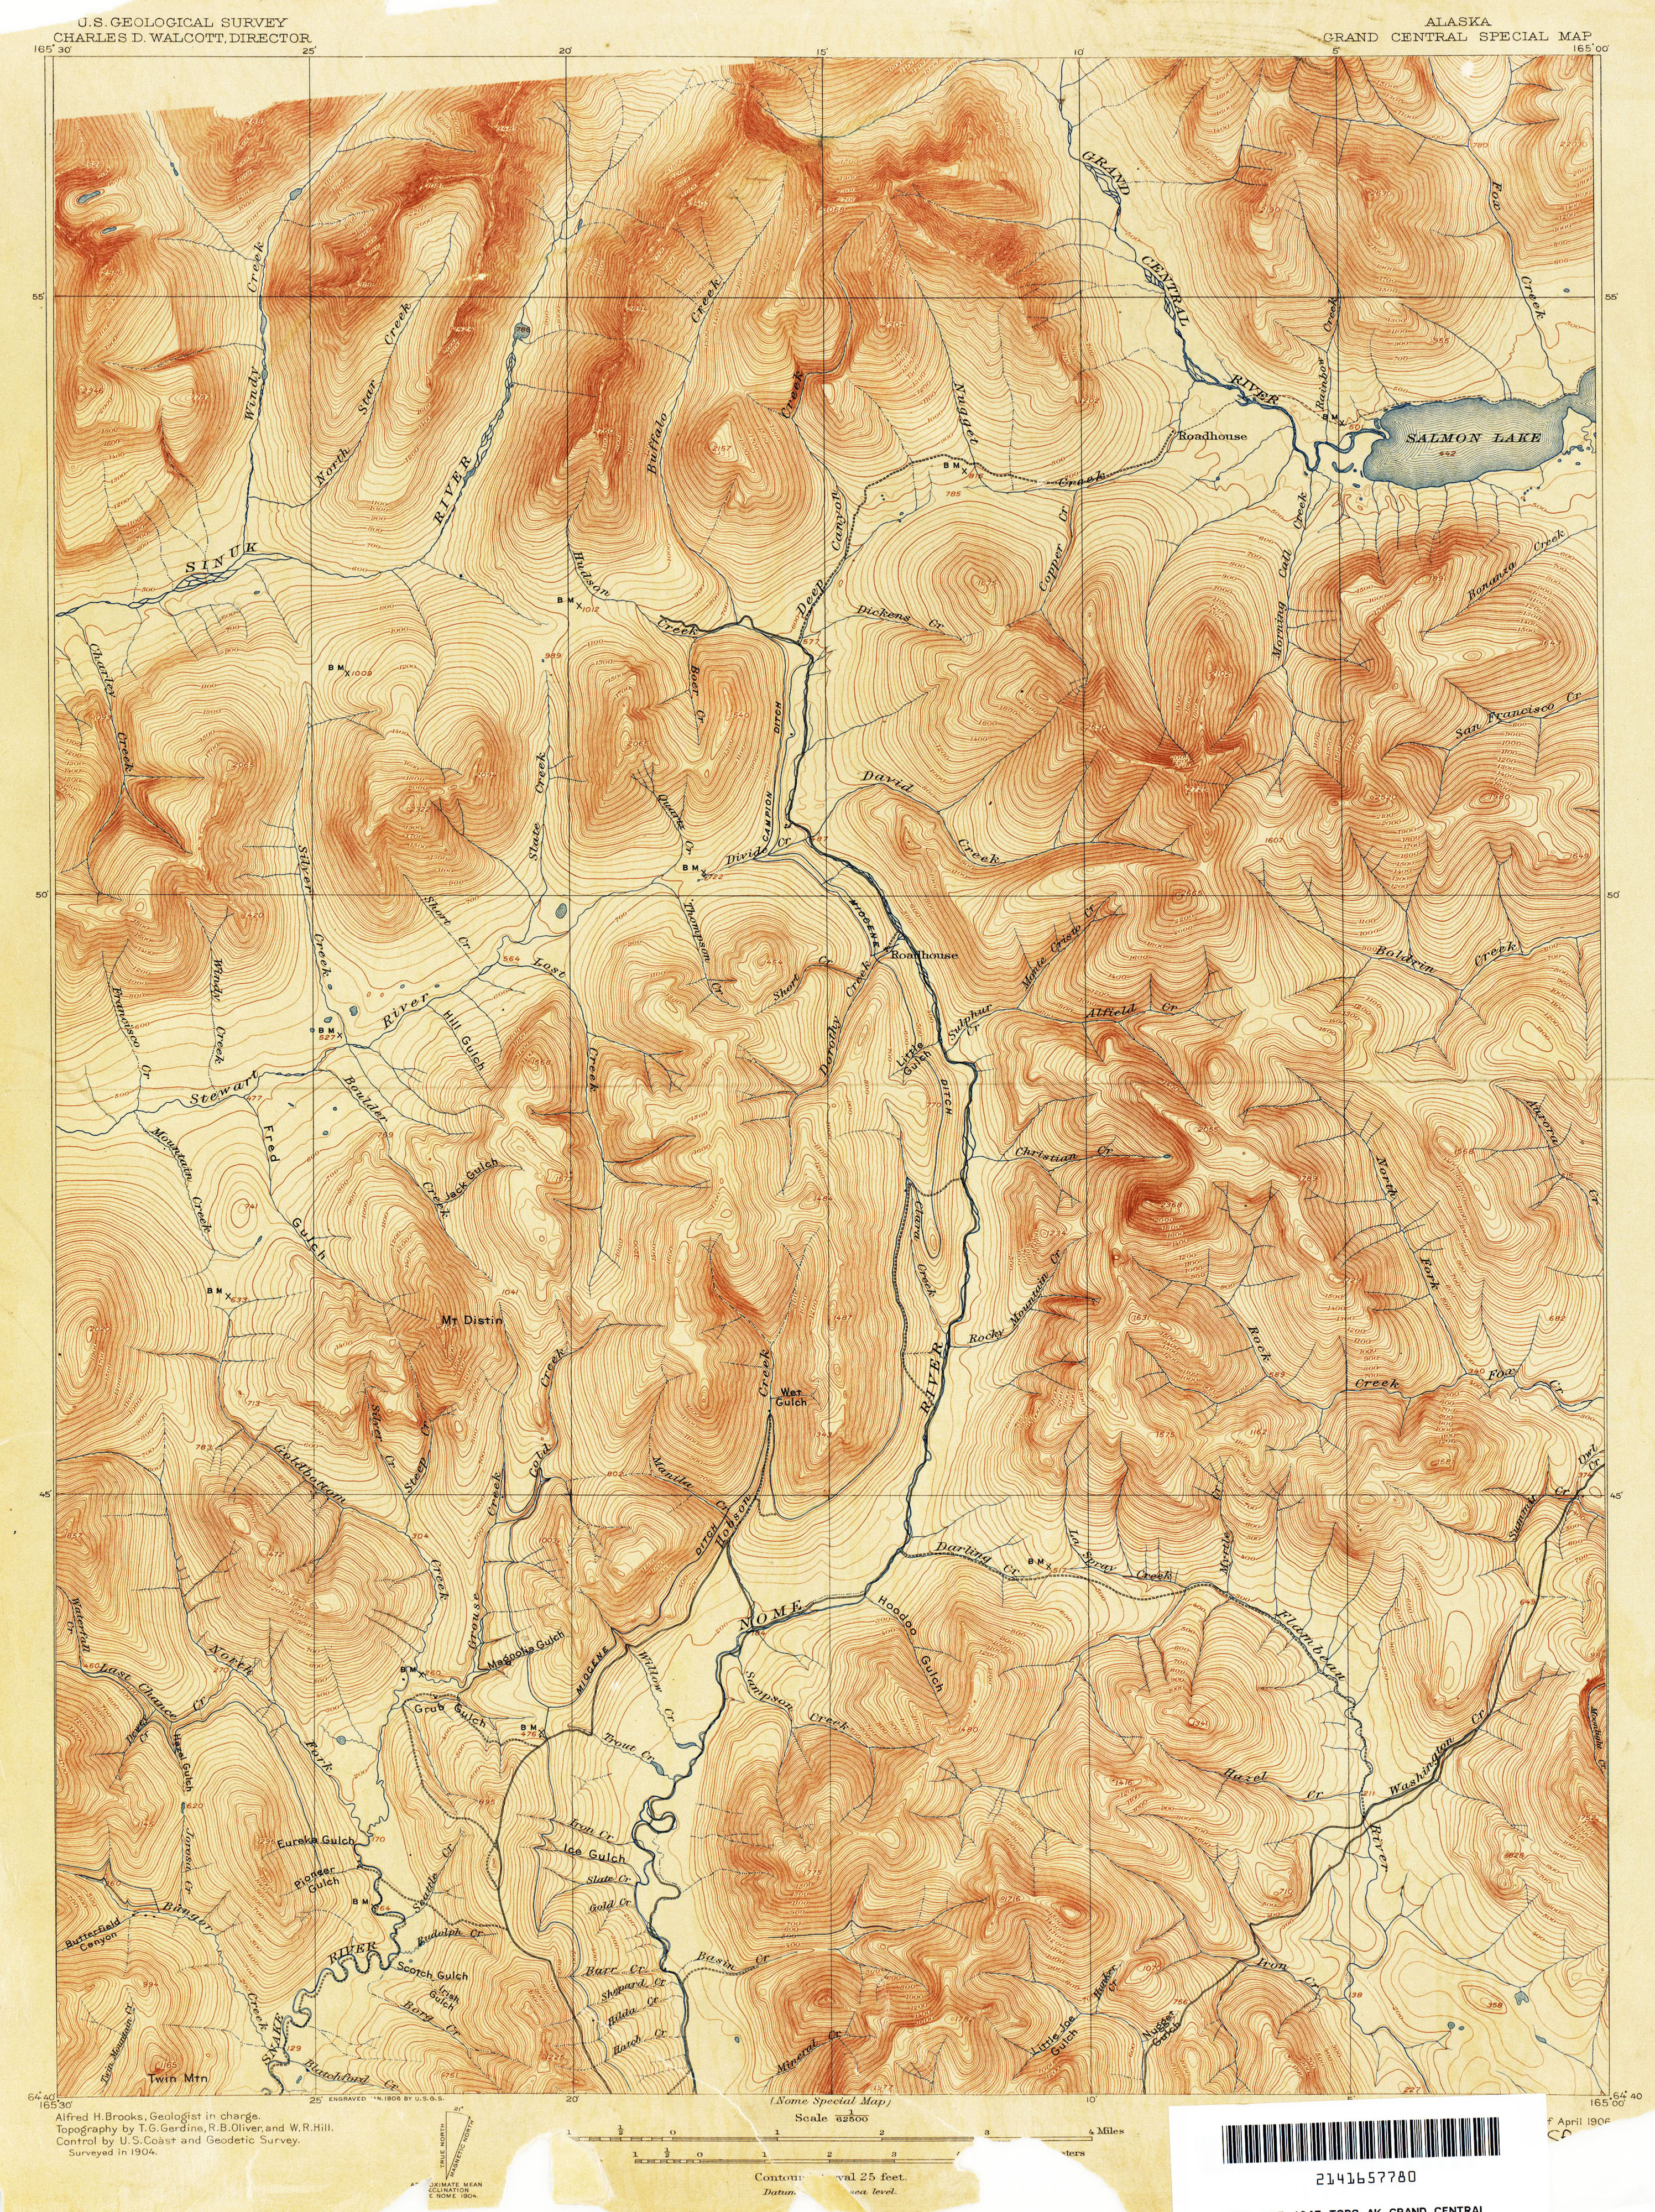 Alaska Topographic Maps by USGS (314CA) — Atlas of Places